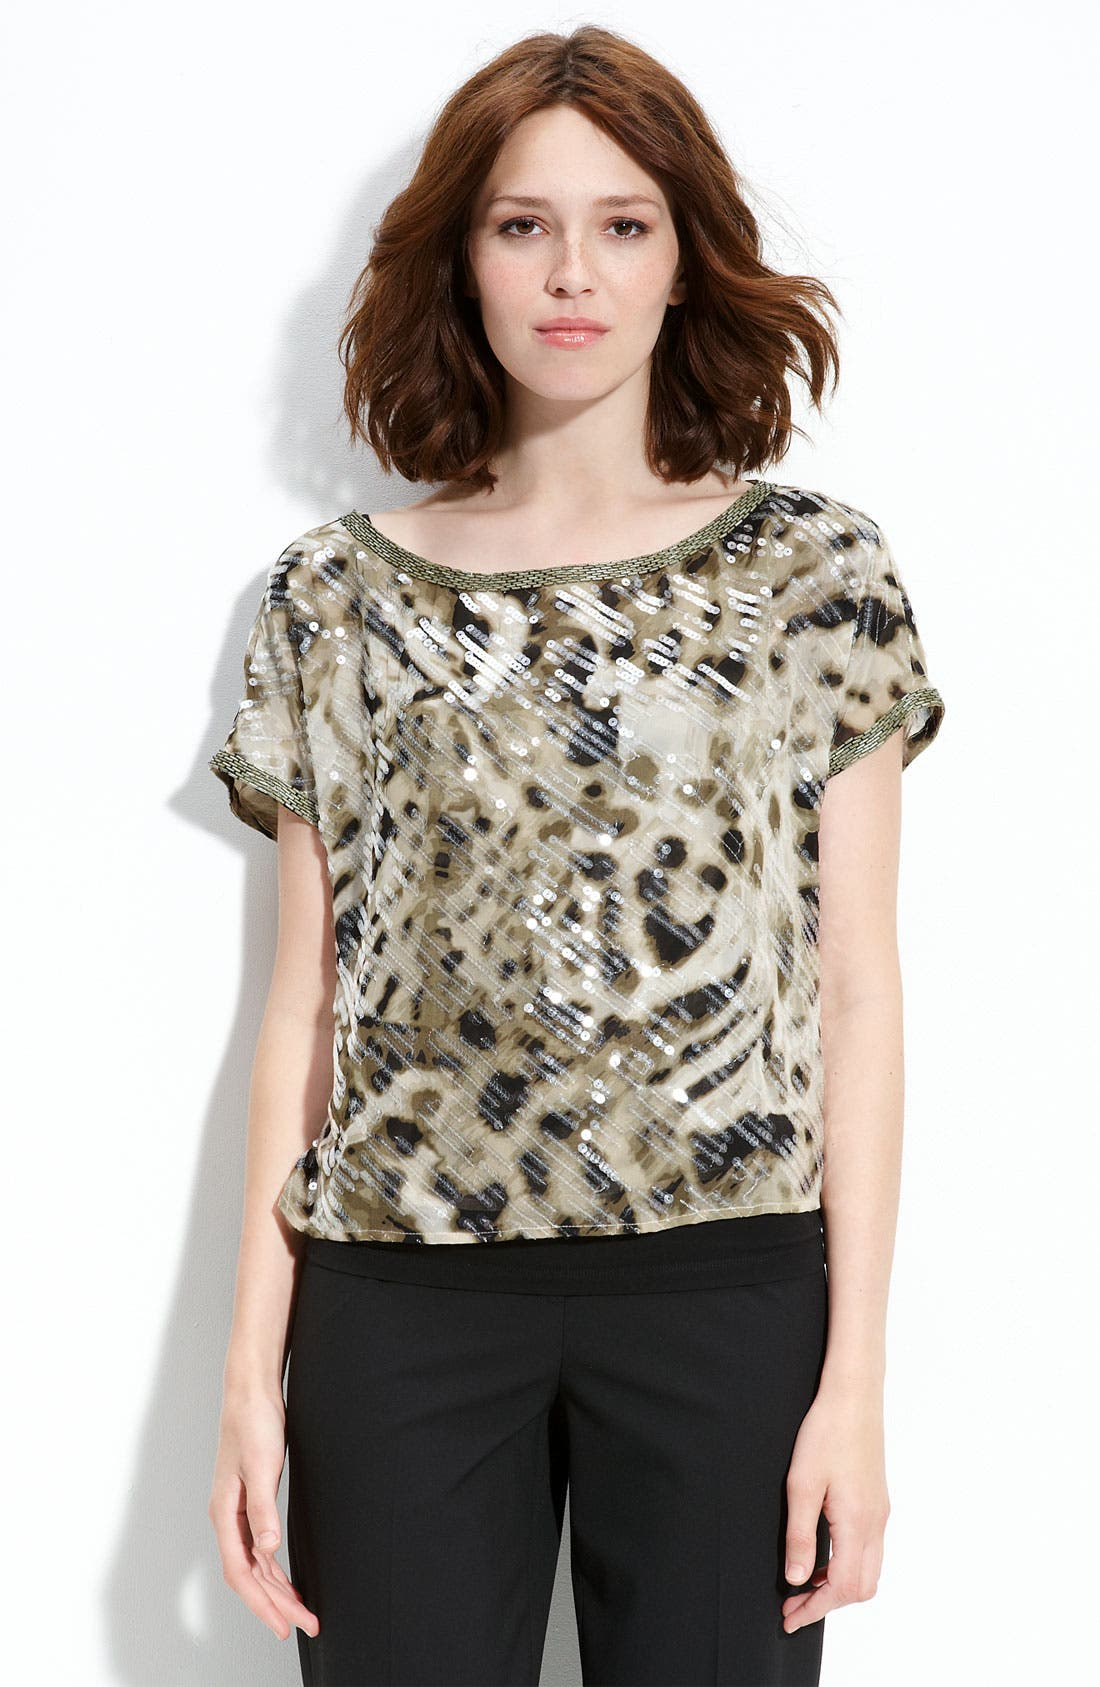 Alternate Image 1 Selected - Vince Camuto Sequin Boxy Top (Petite)